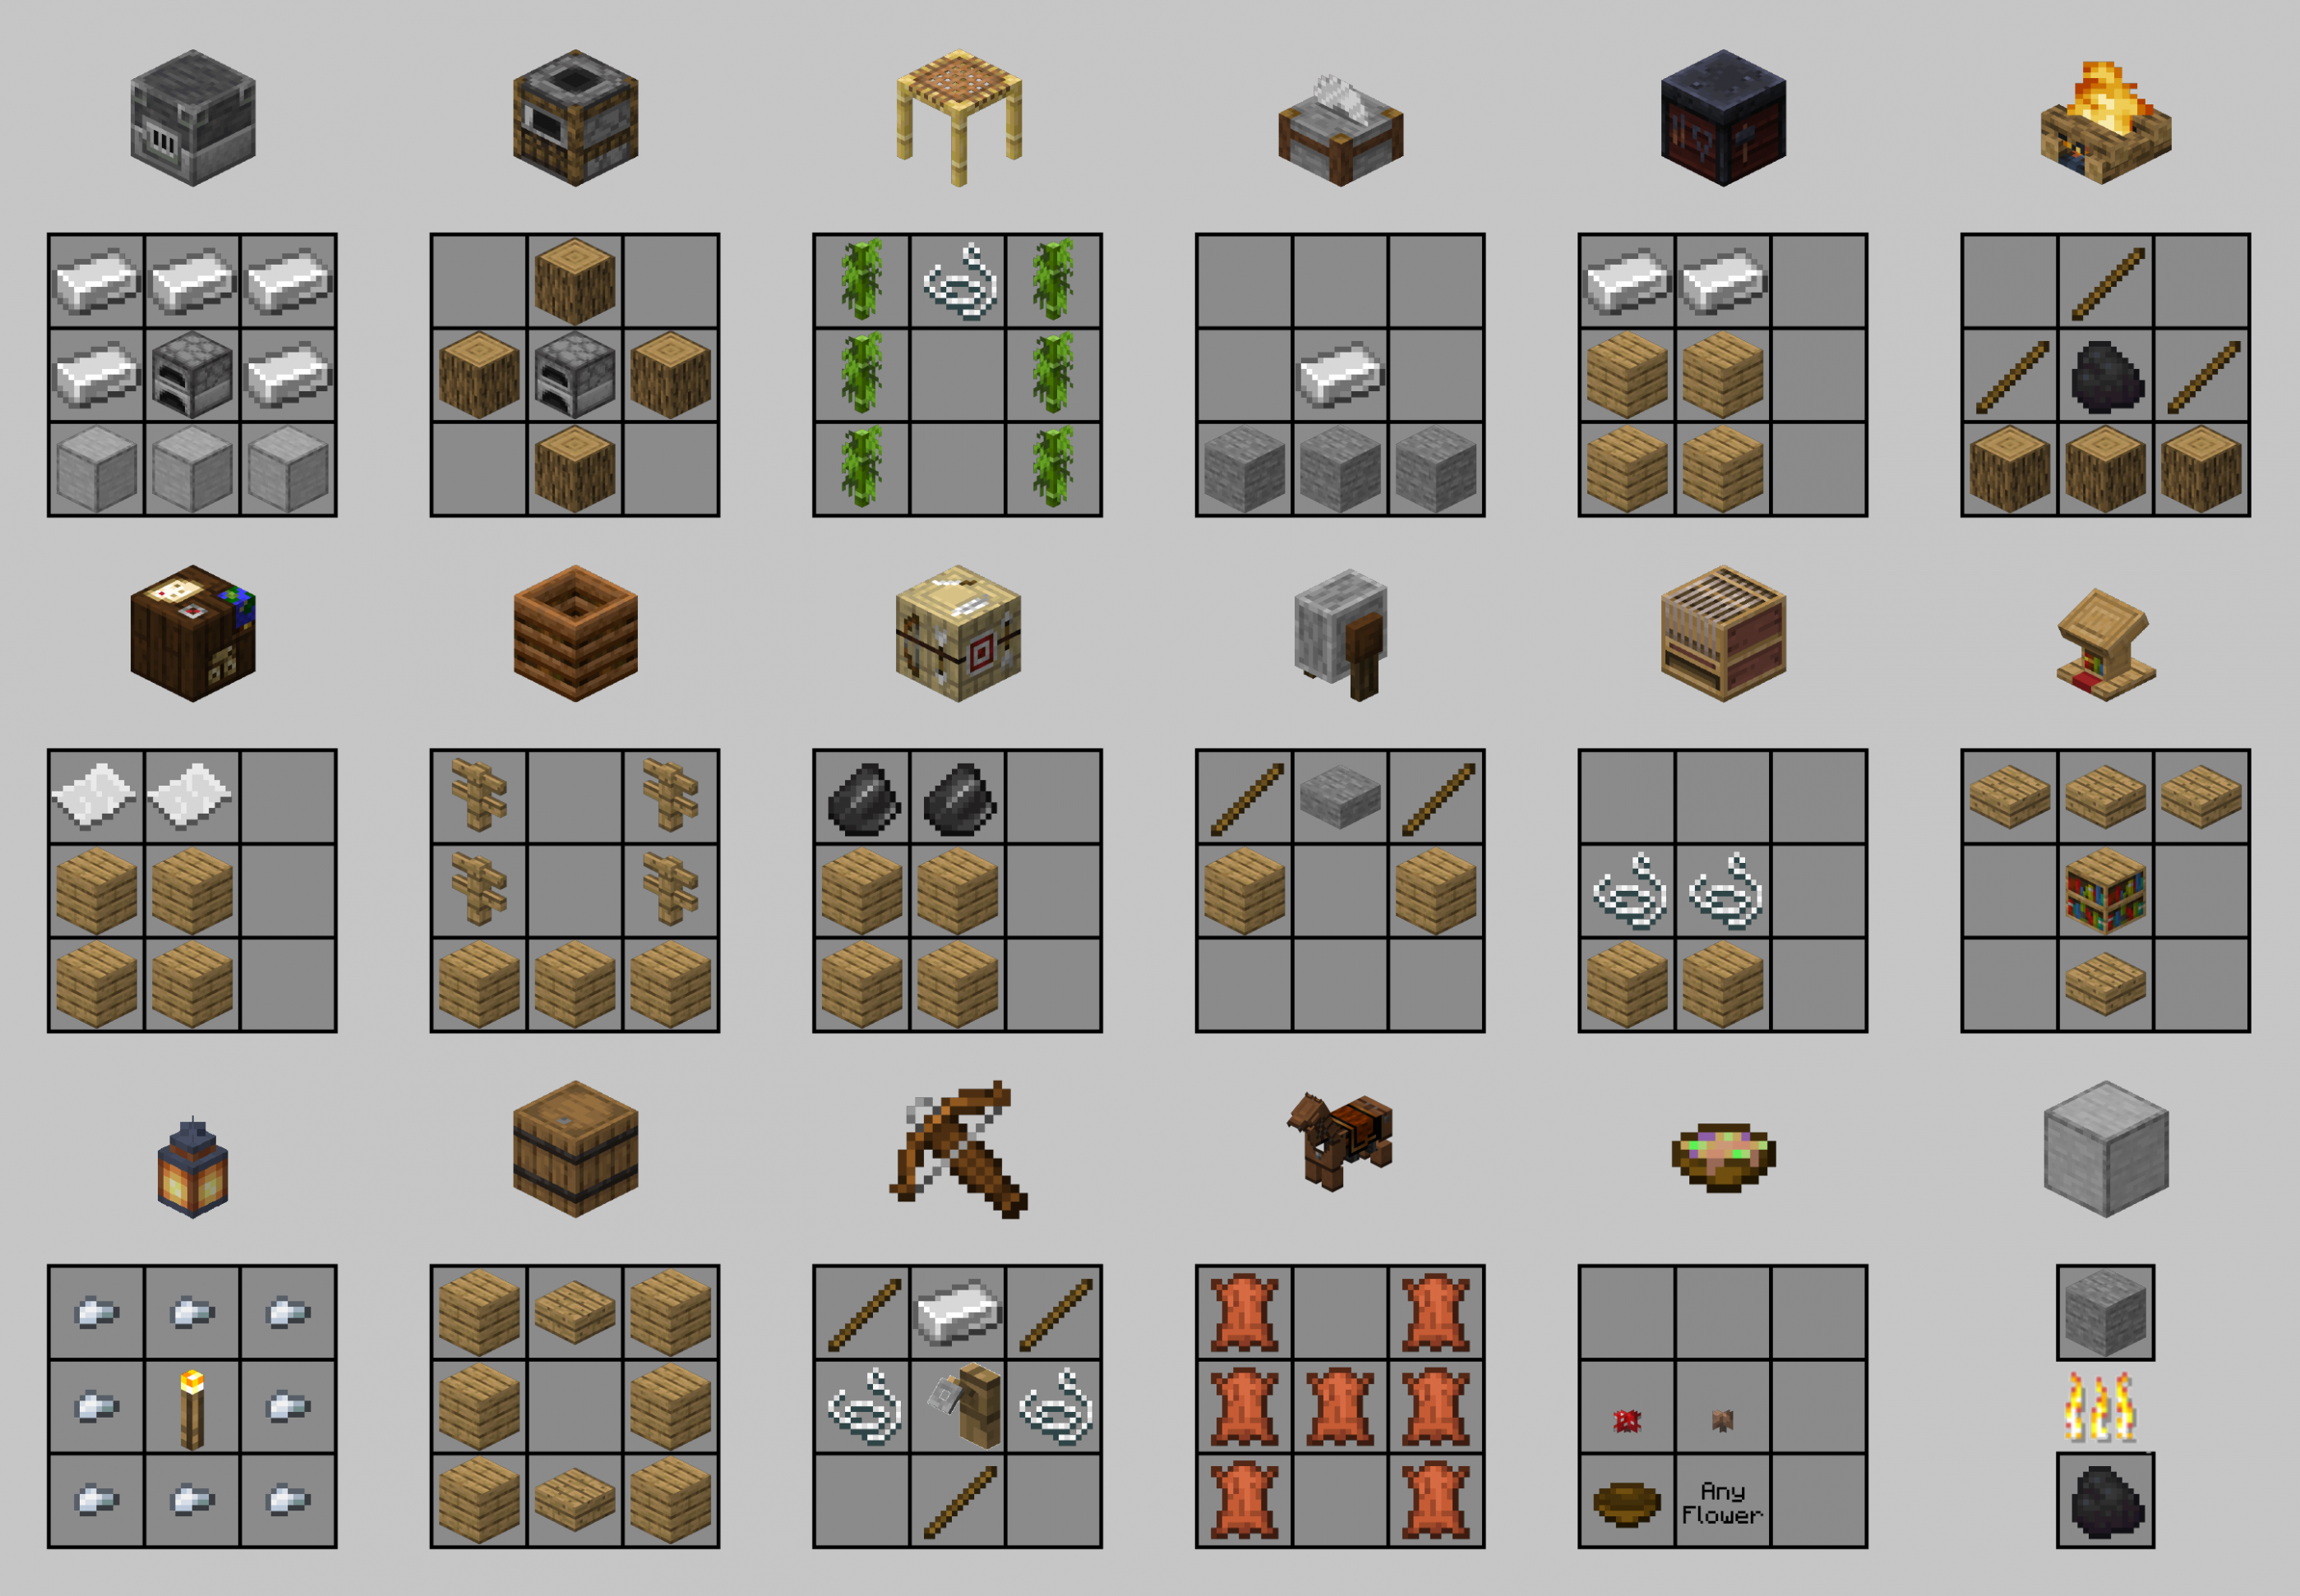 image of crafting recipes for the new items from 11